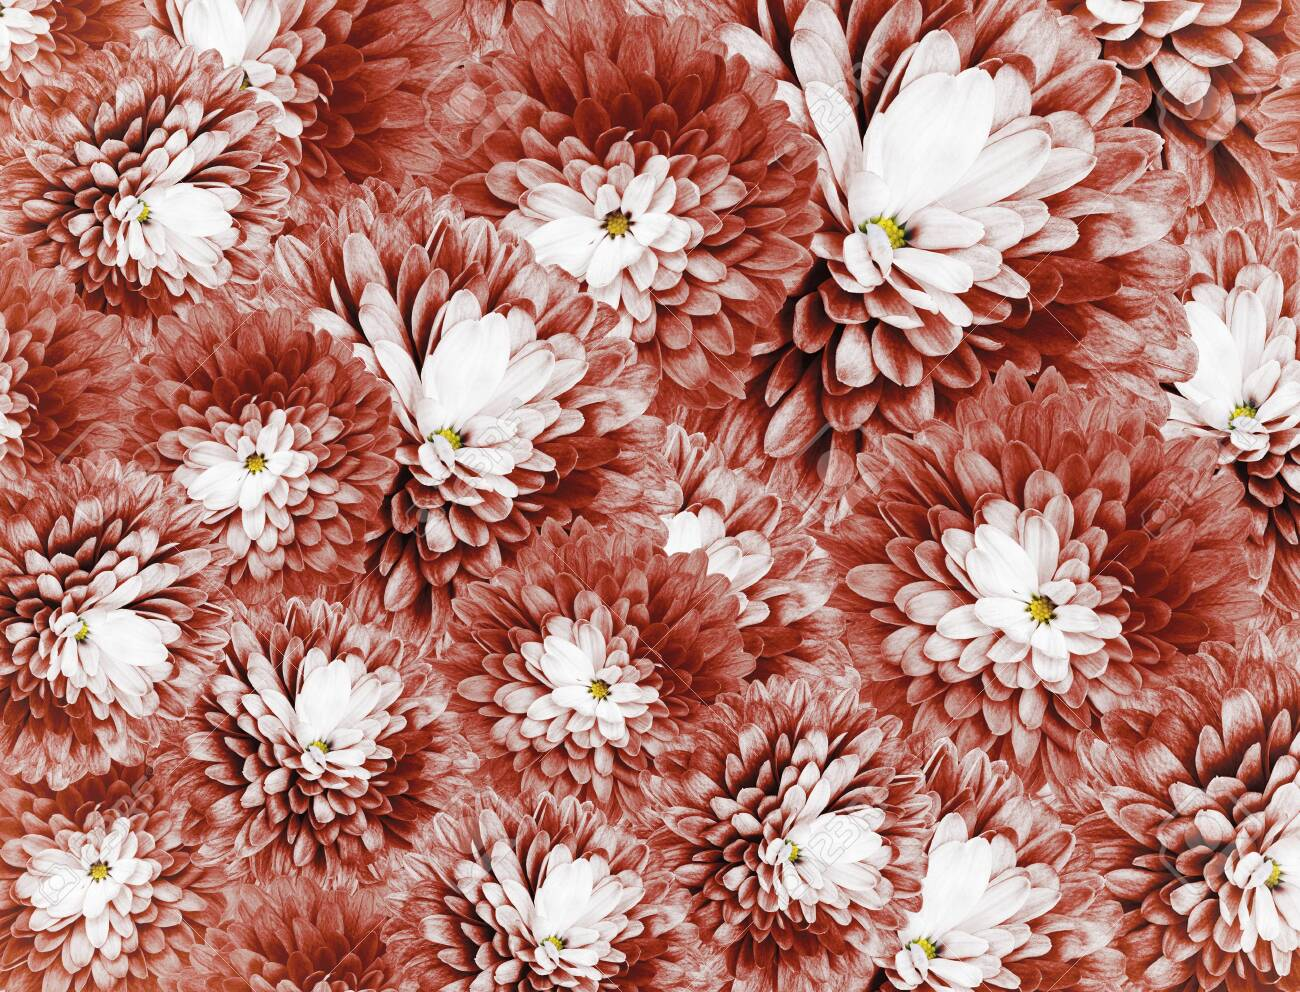 Chrysanthemums Flowers Red Background Floral Collage Flower